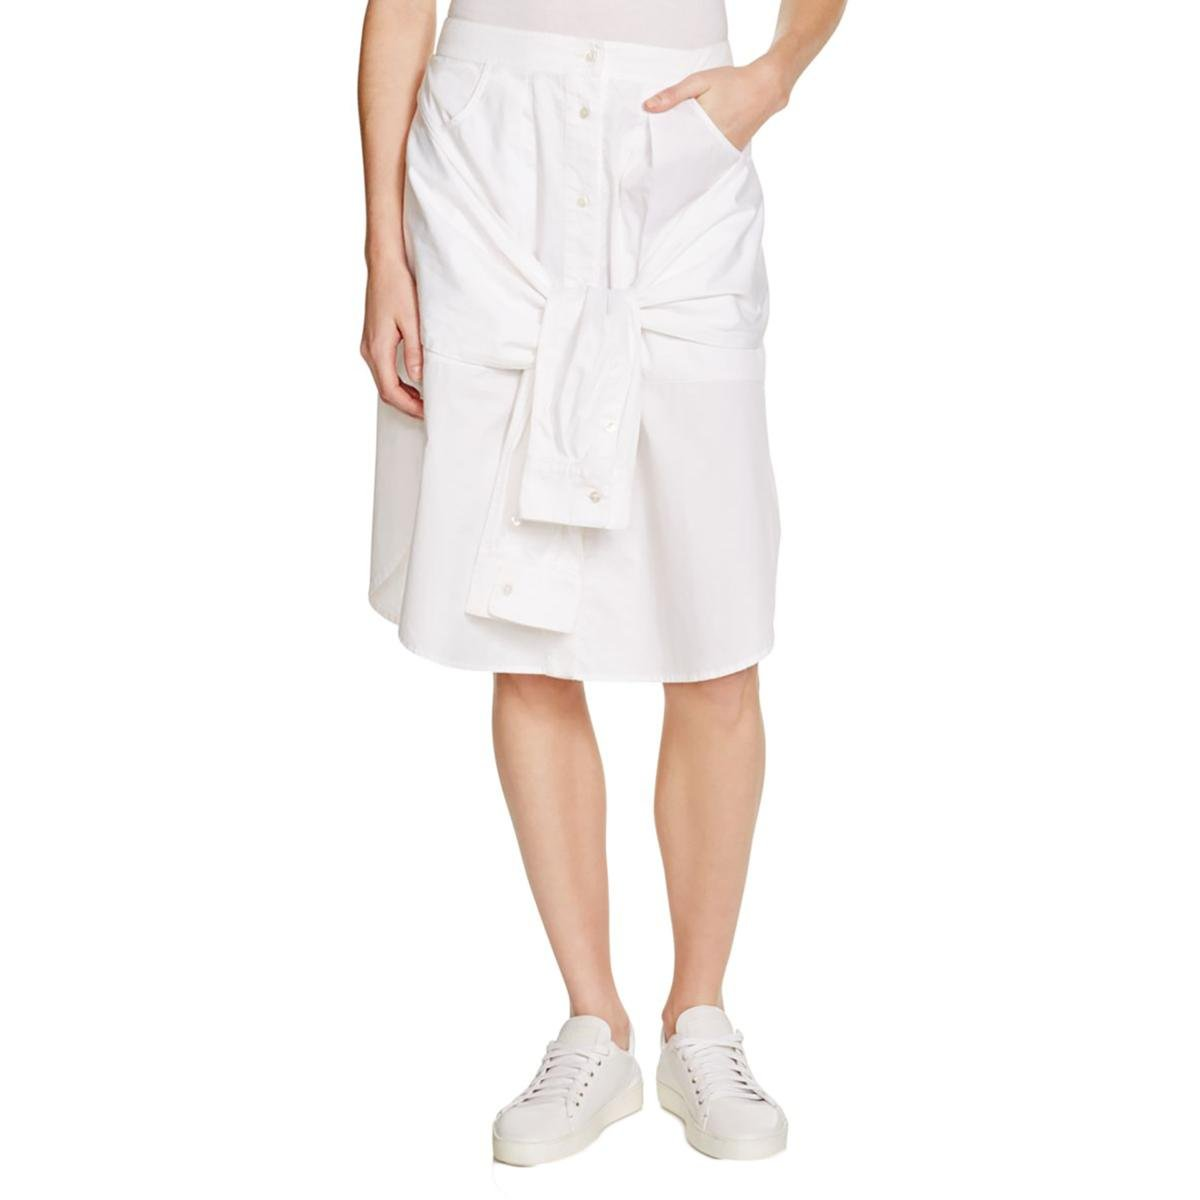 T Alexander Wang Womens Poplin Front Tie A-Line Skirt White 10 by T by Alexander Wang